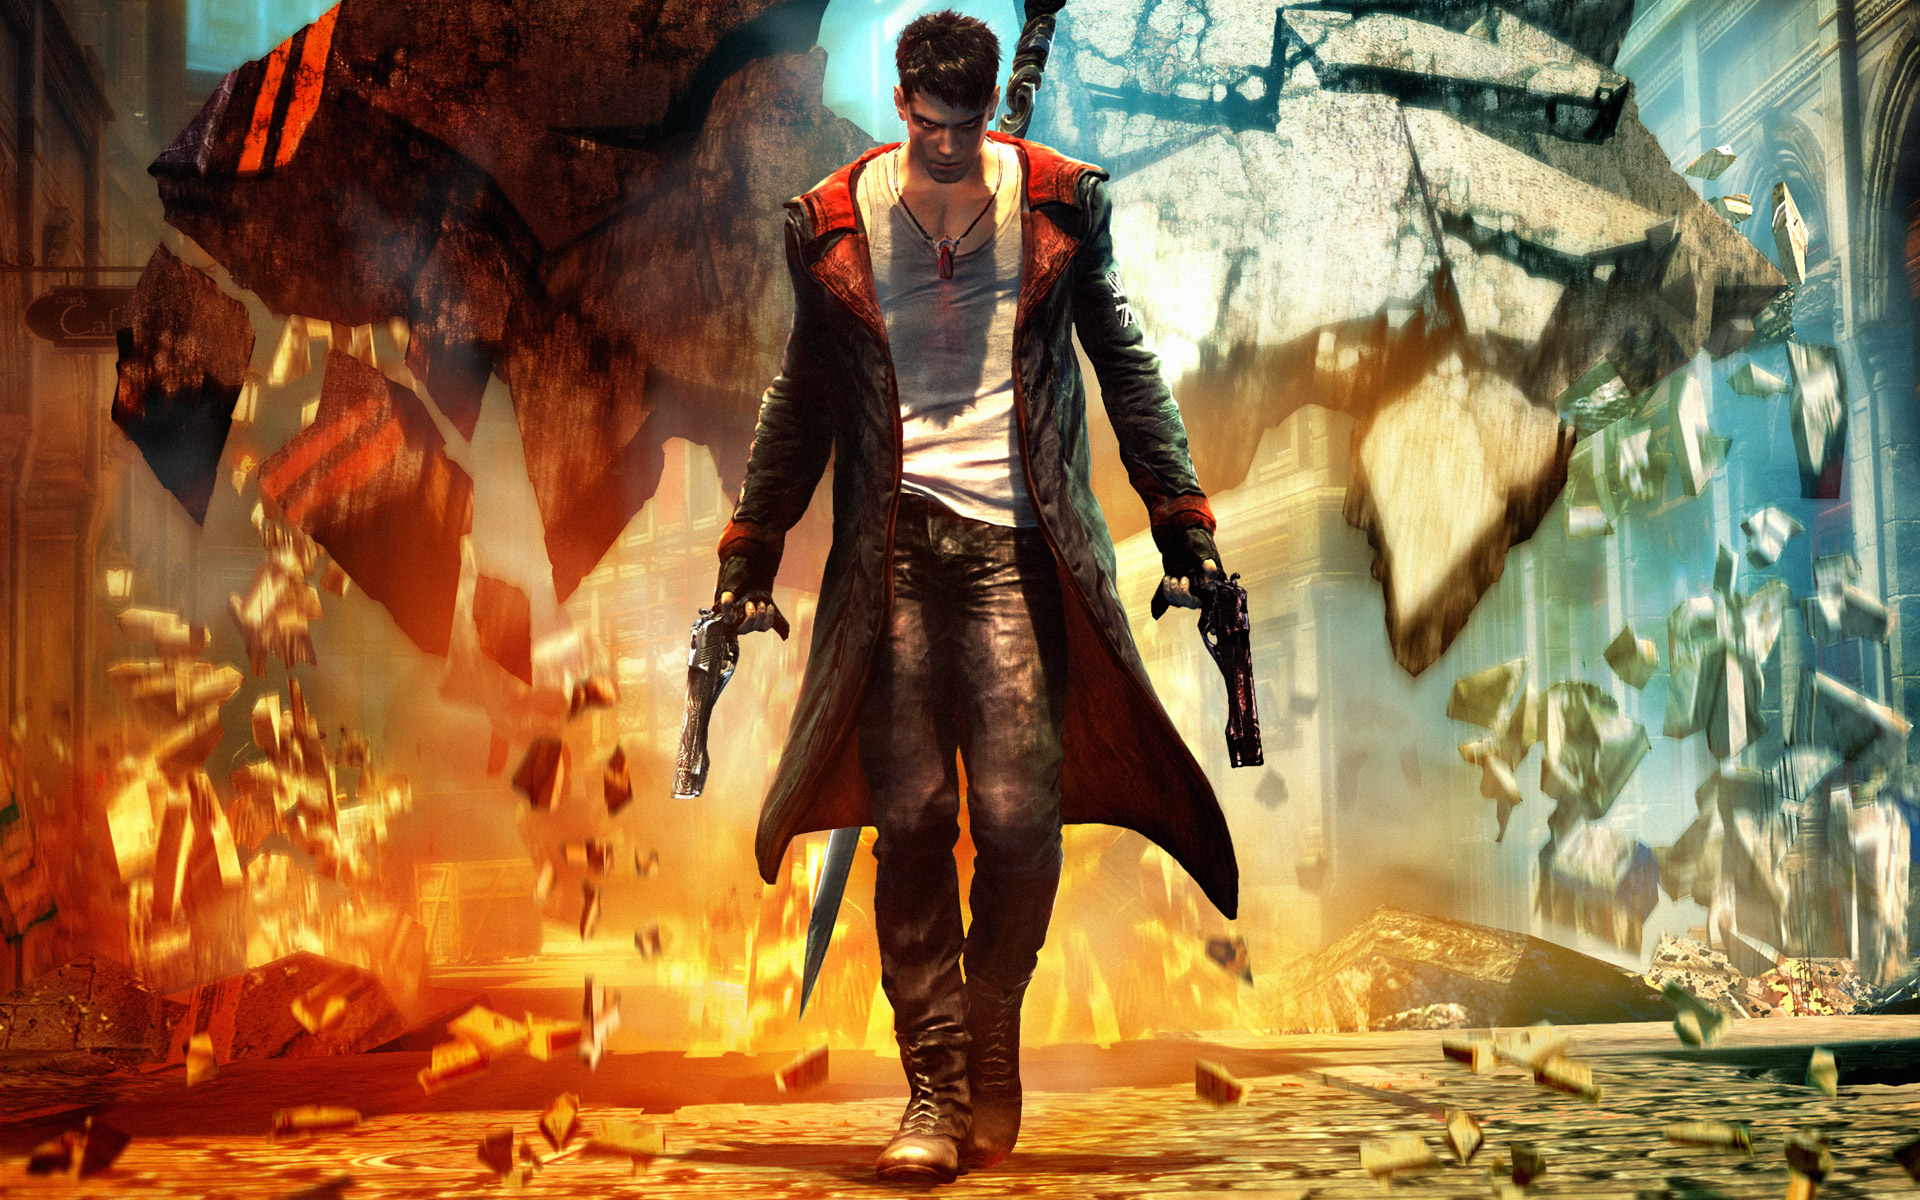 Devil may cry wallpaper 14378 1920x1200 px hdwallsource devil may cry wallpaper 14378 voltagebd Gallery